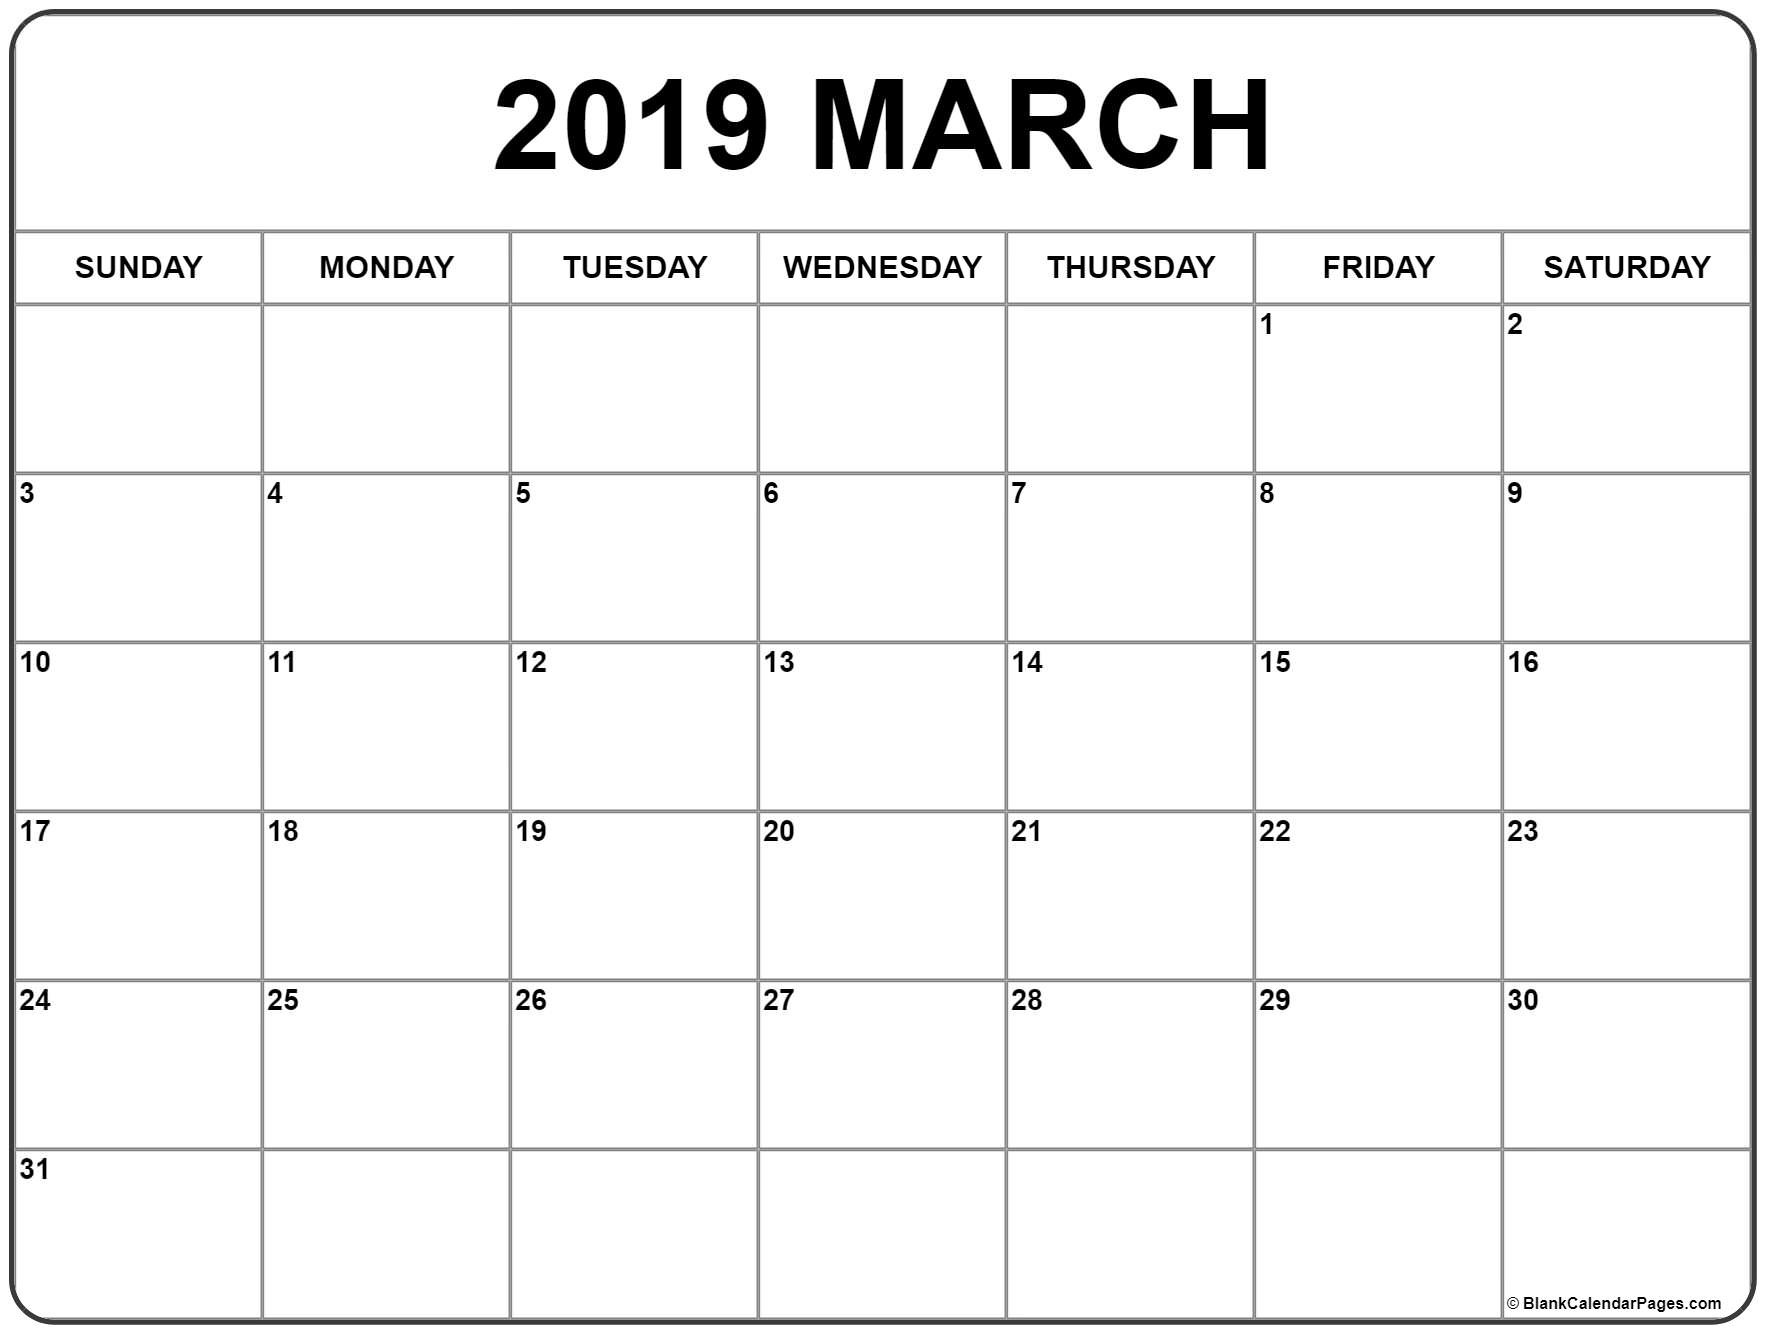 March Holiday Calendar 2019 Más Populares March 2019 Calendar Of March Holiday Calendar 2019 Mejores Y Más Novedosos March 2019 Calendar Printable with Holidays